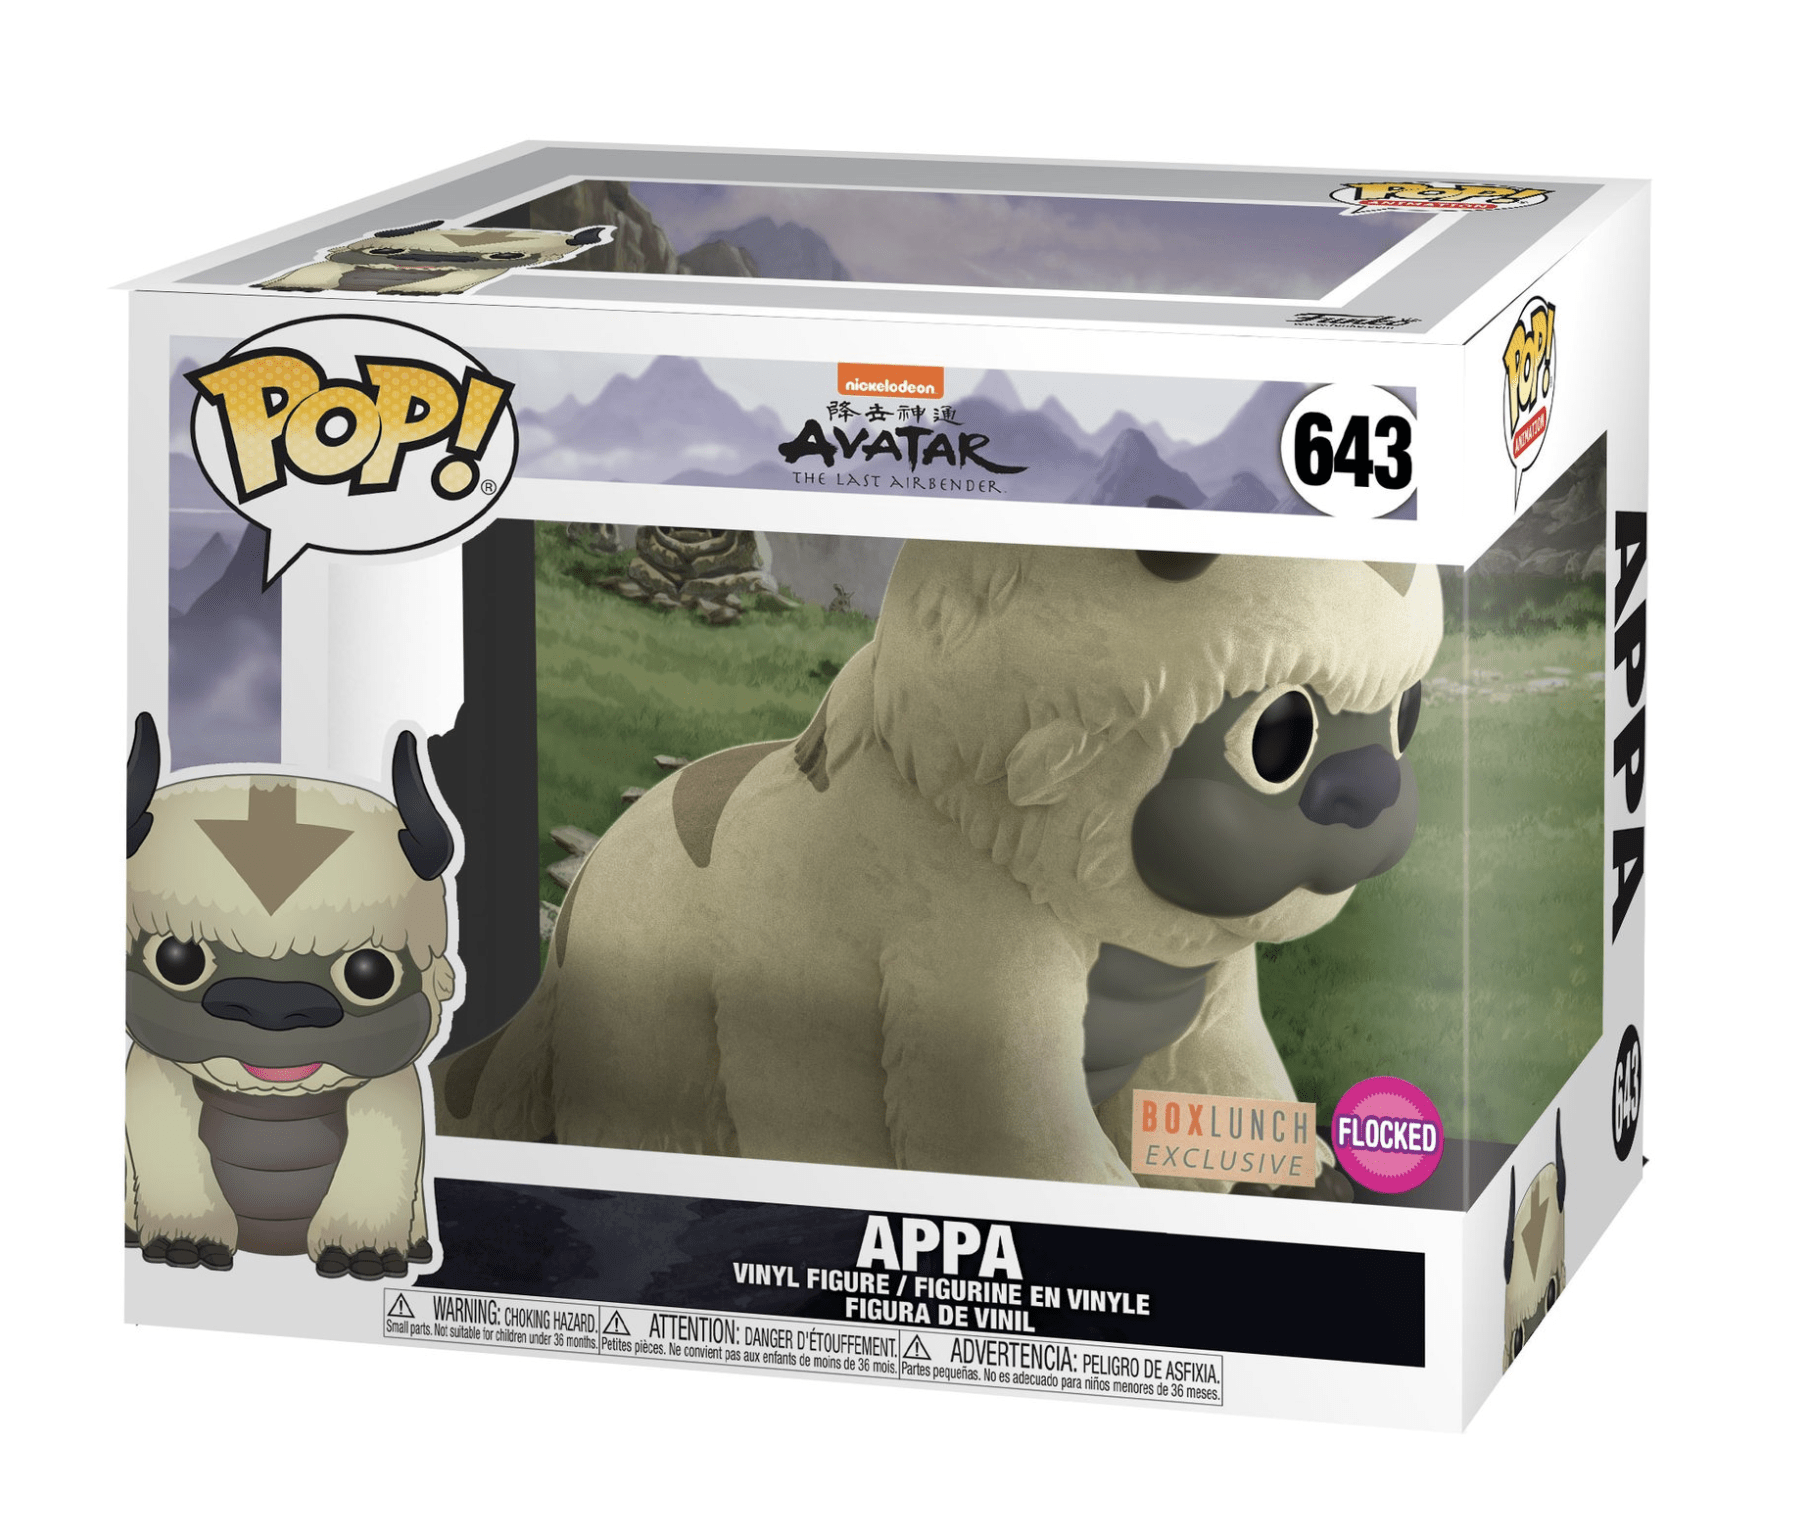 Avatar The Last Air Bender Funko Pop Appa Flocked Boxlunch Exclusive